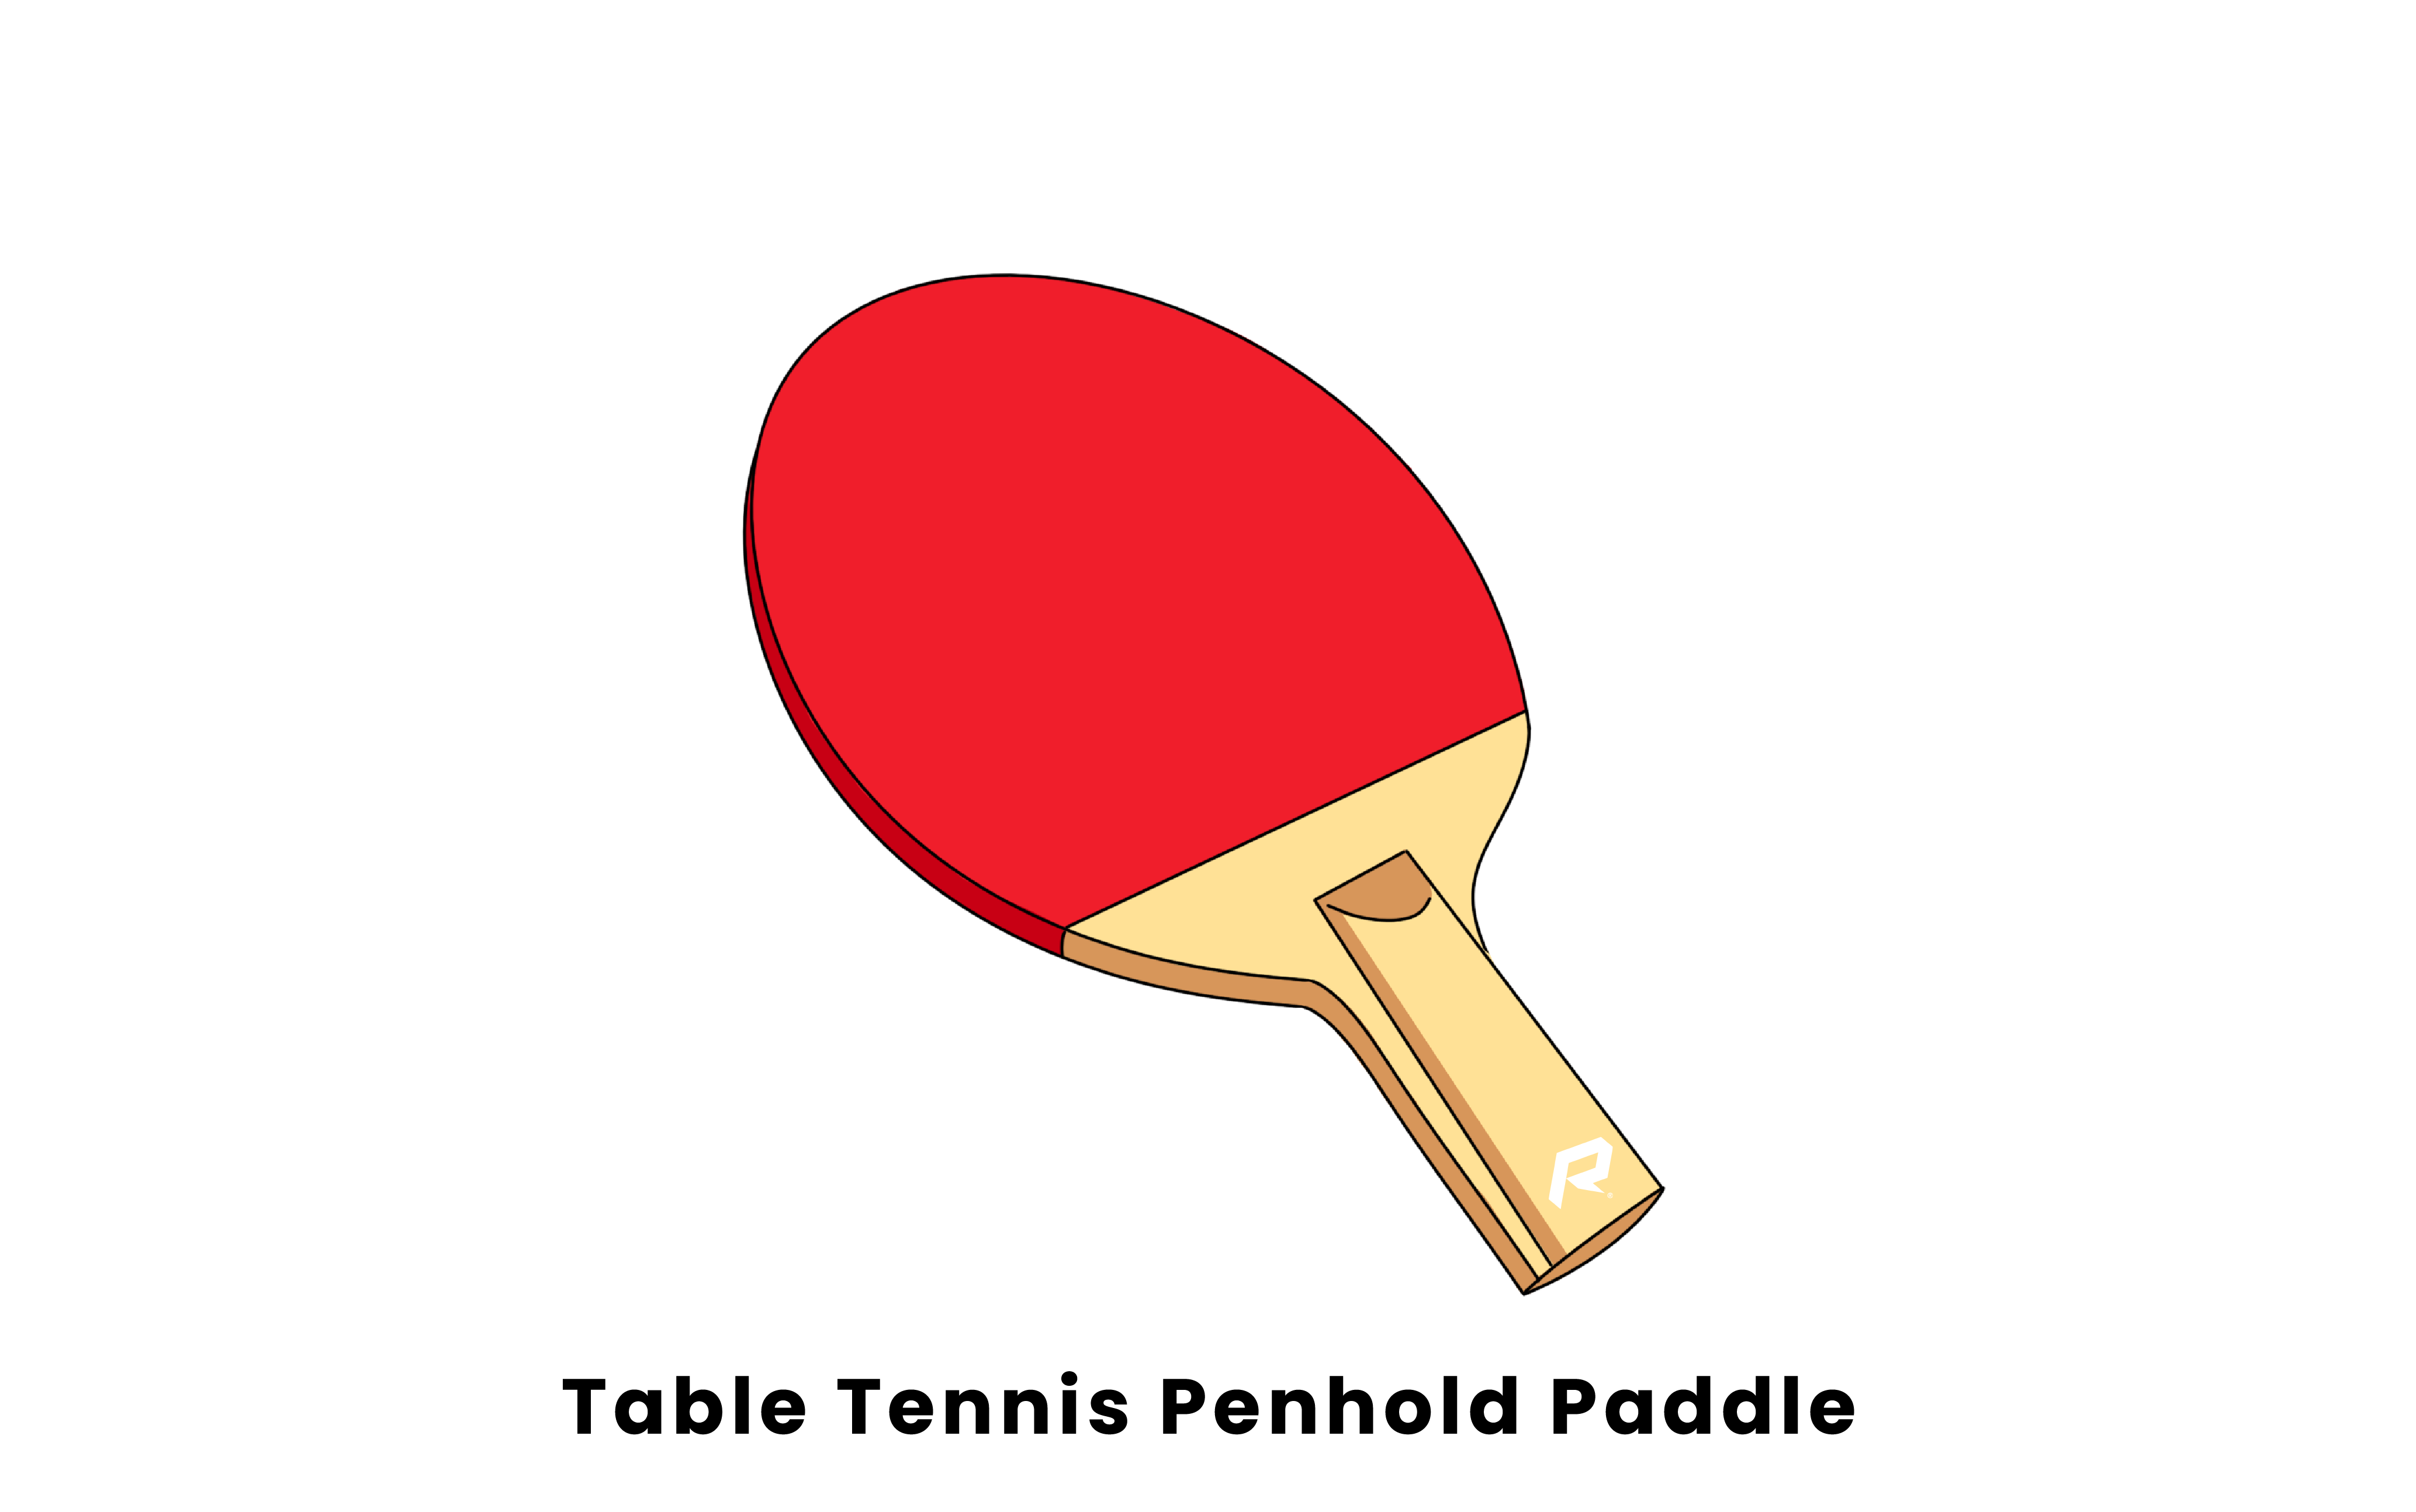 Table Tennis penhold paddle